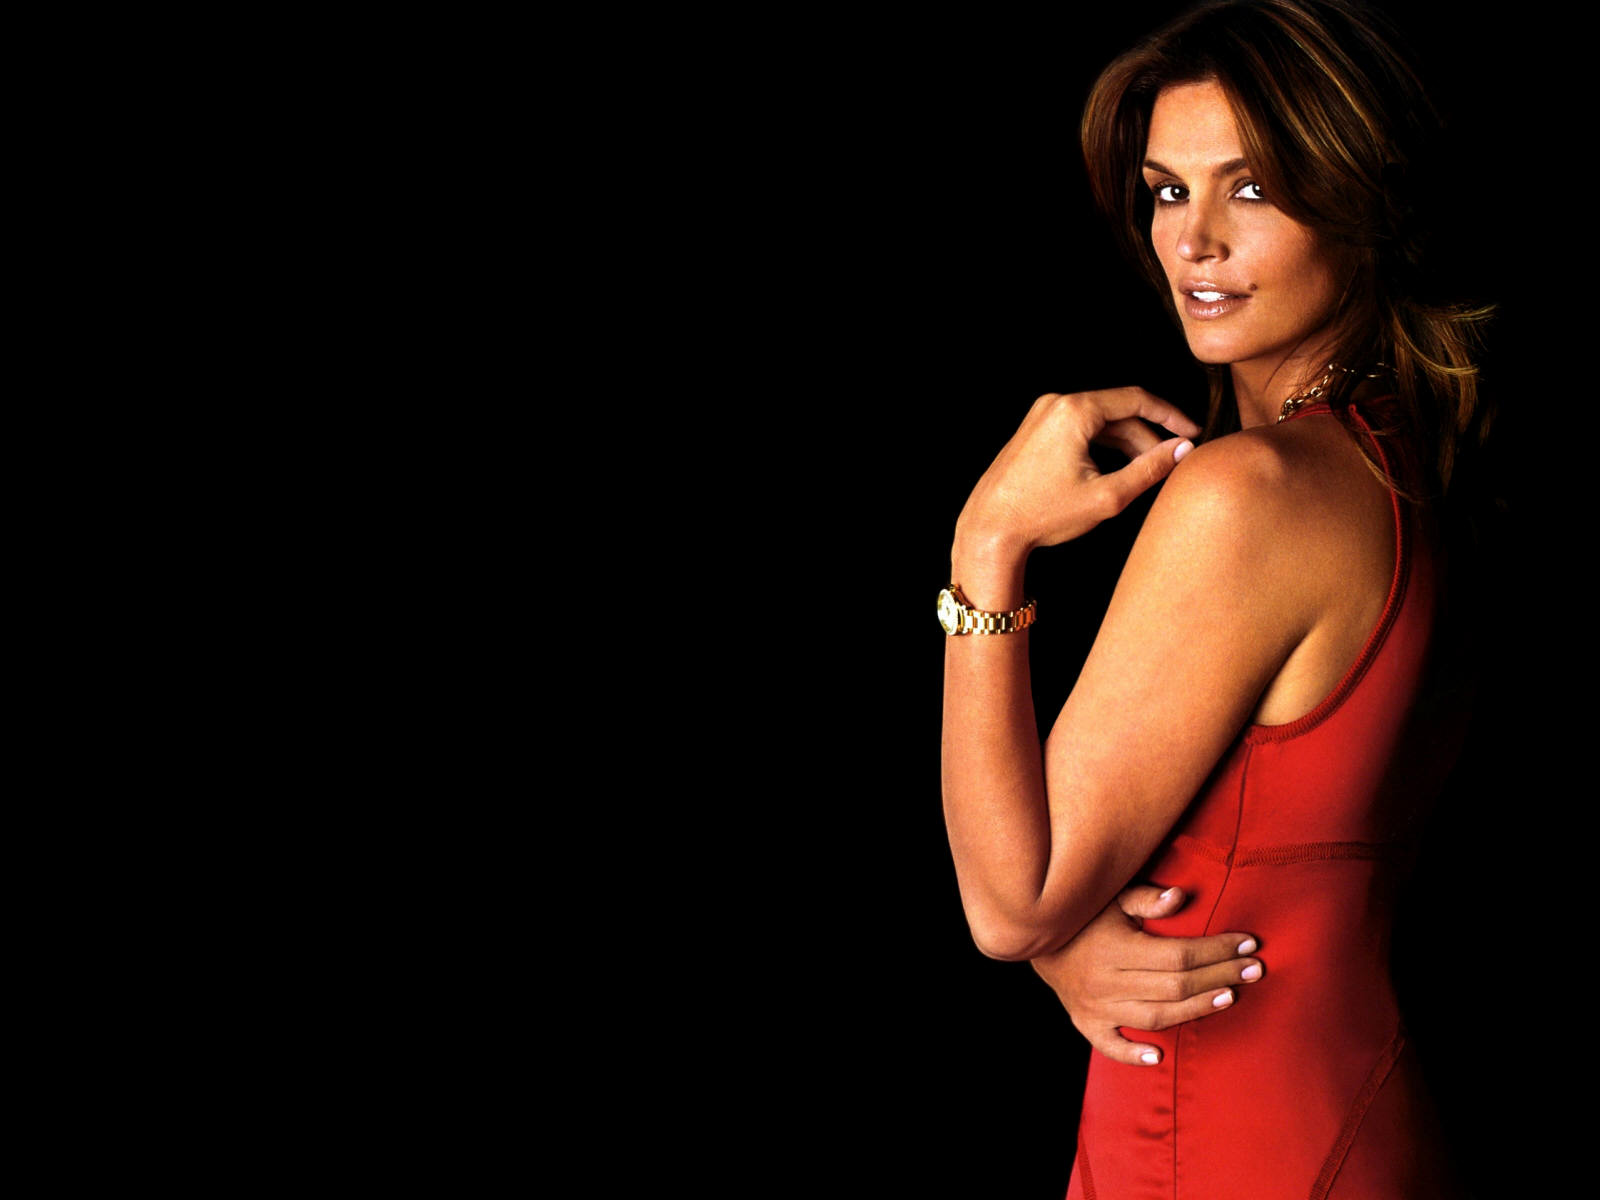 1600x1200 - Cindy Crawford Wallpapers 1